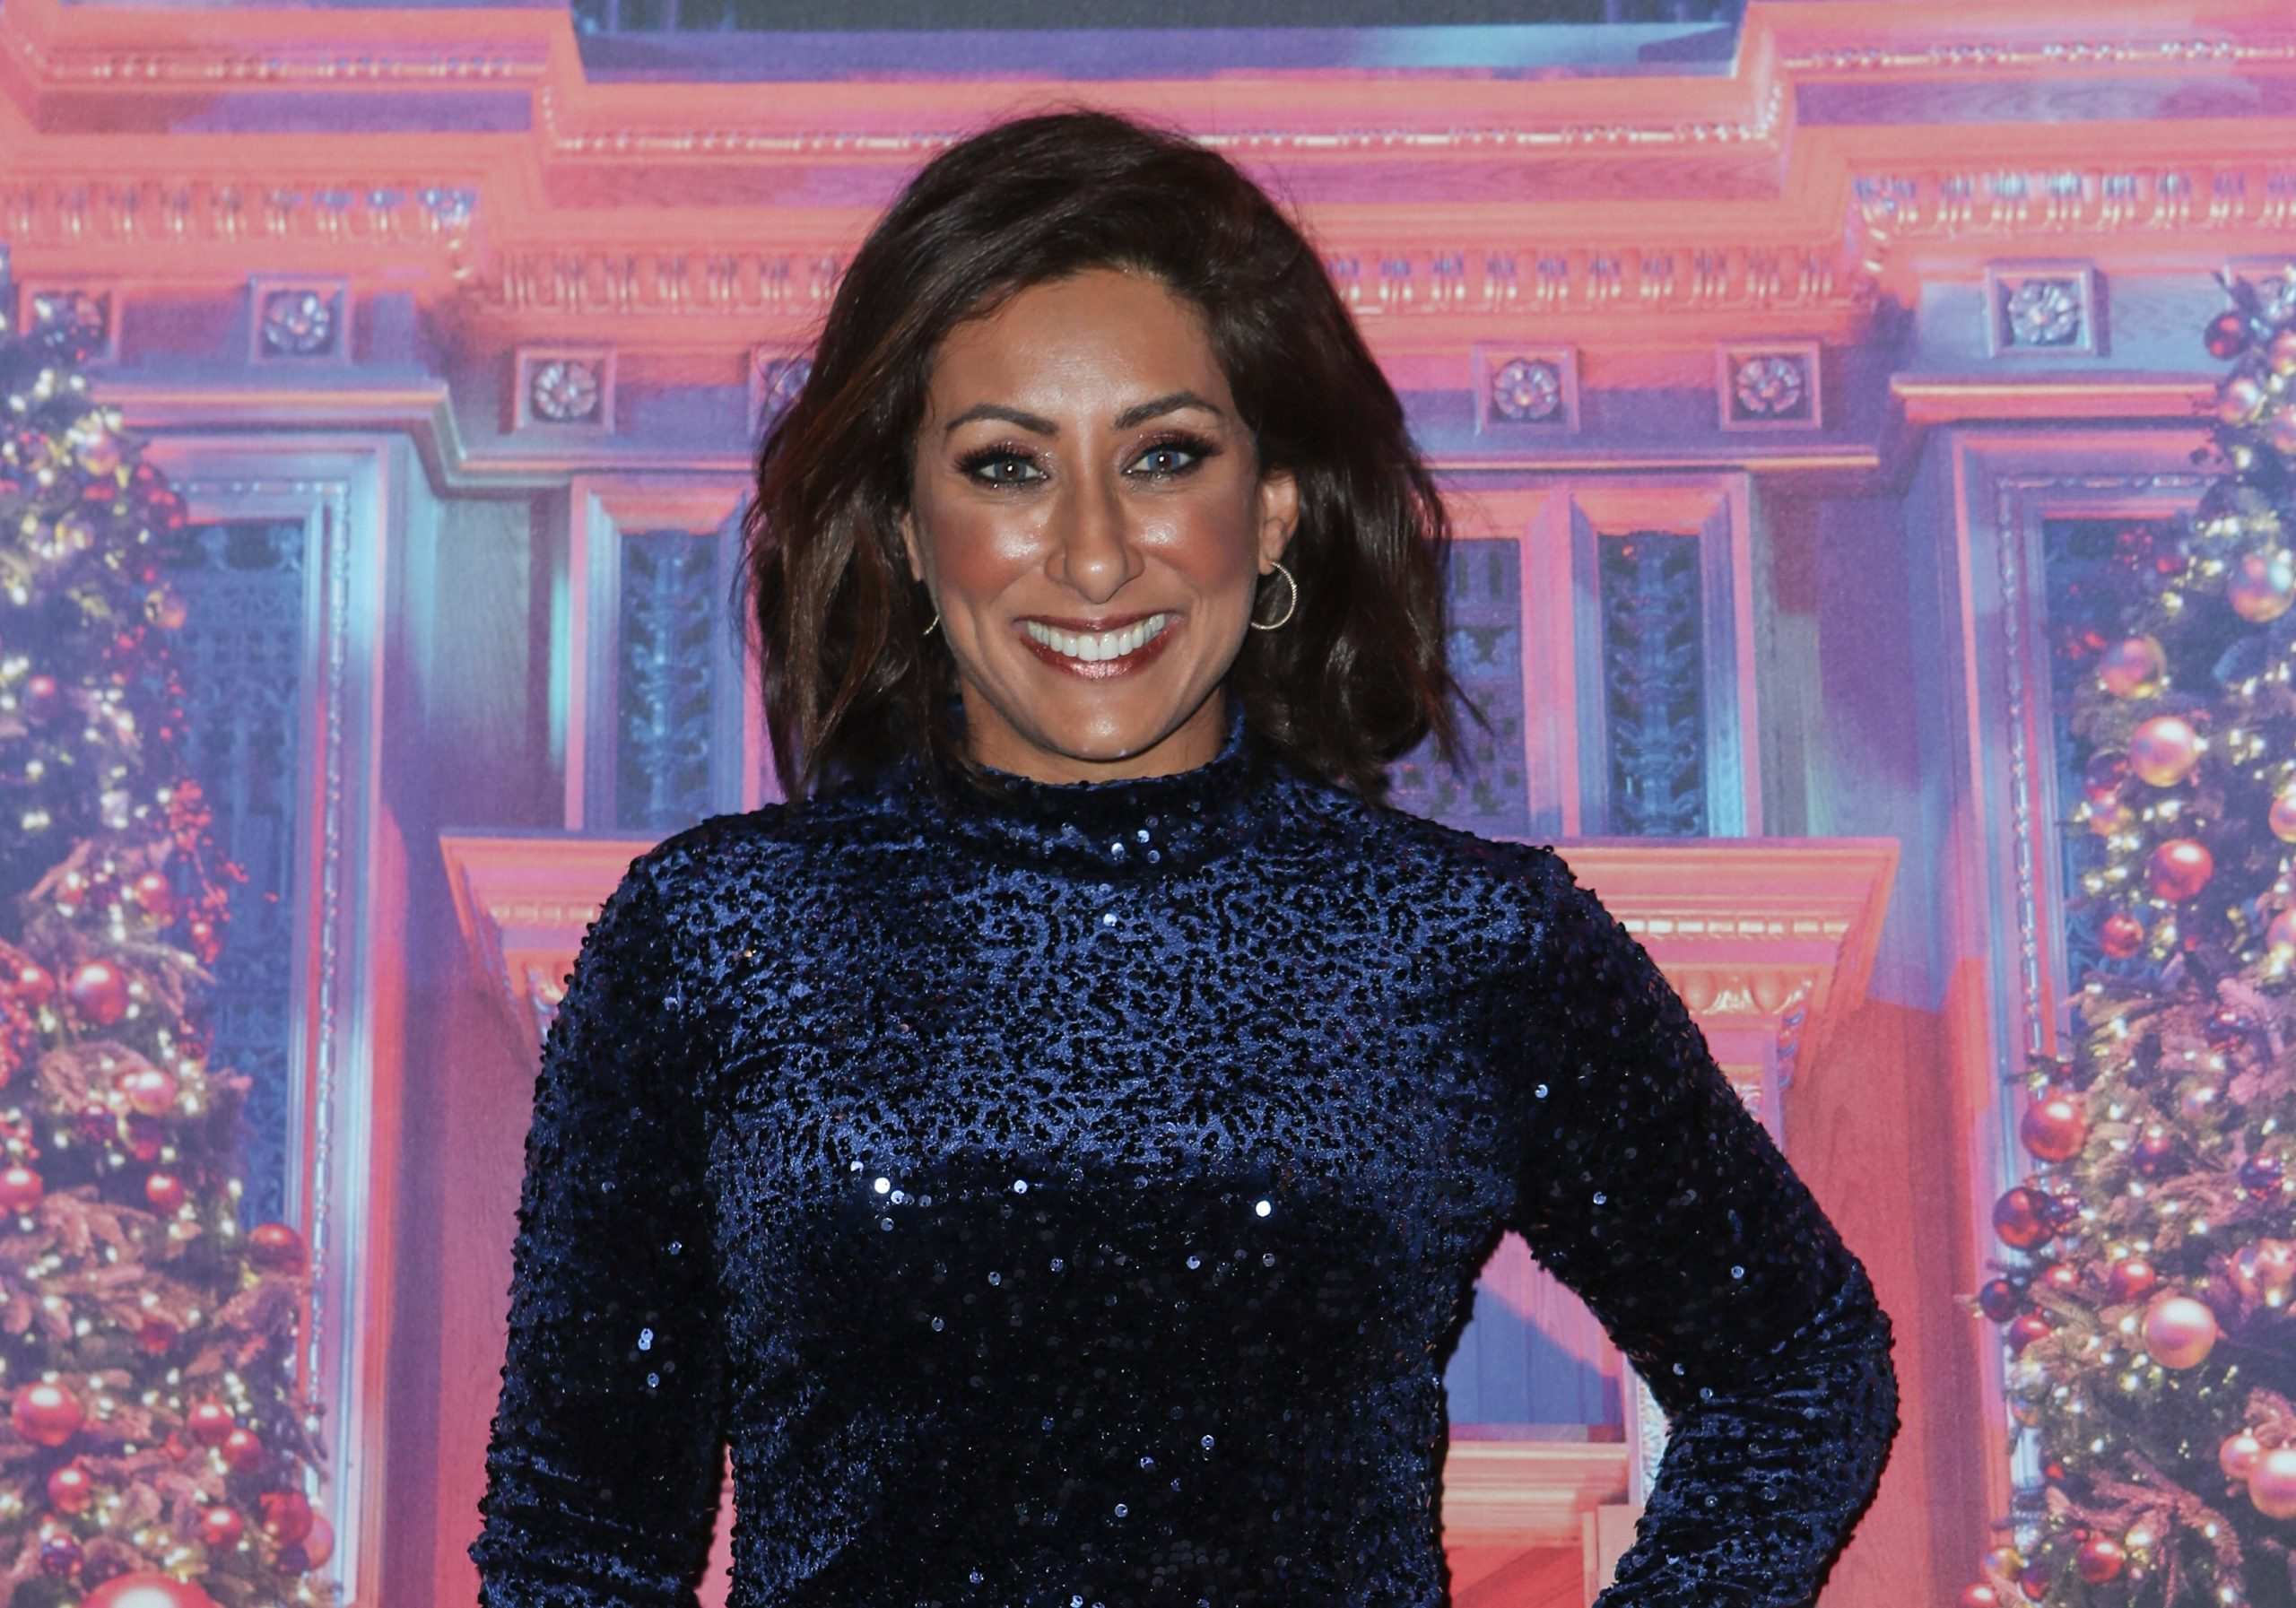 Loose Women's Saira Khan shows off amazing weight loss ahead of 50th birthday